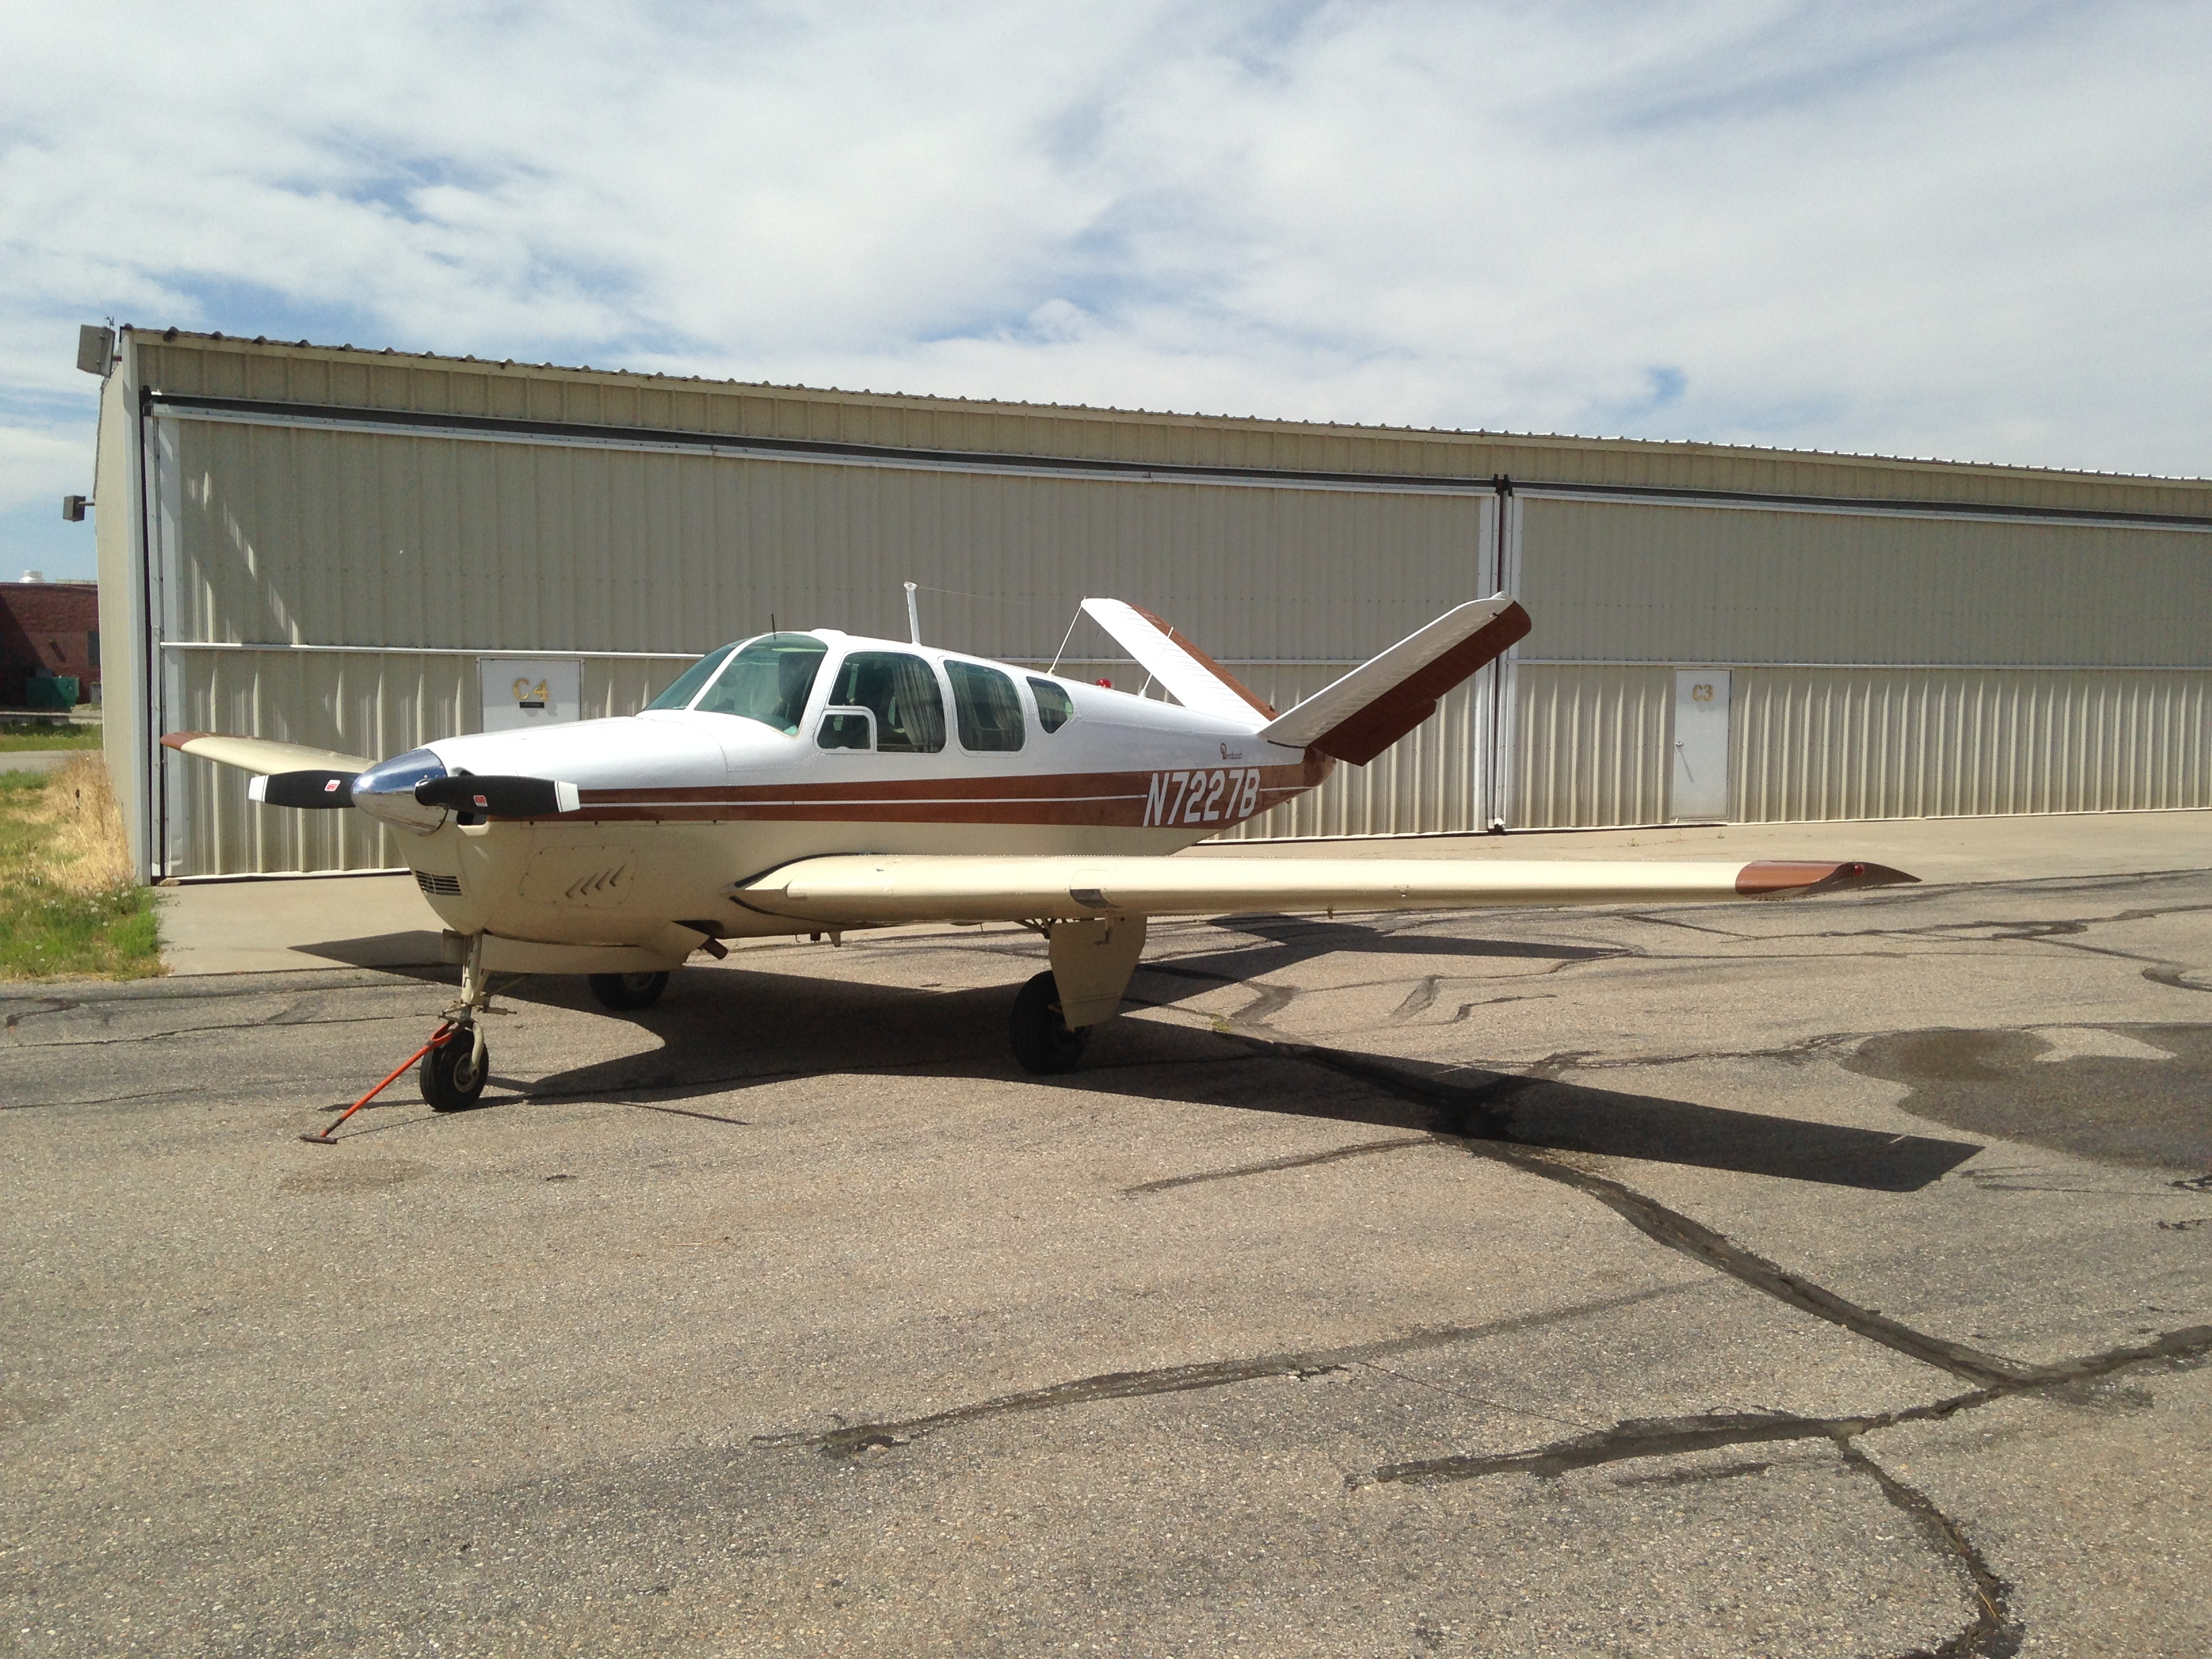 Aircraft Listing - Bonanza J35 listed for sale